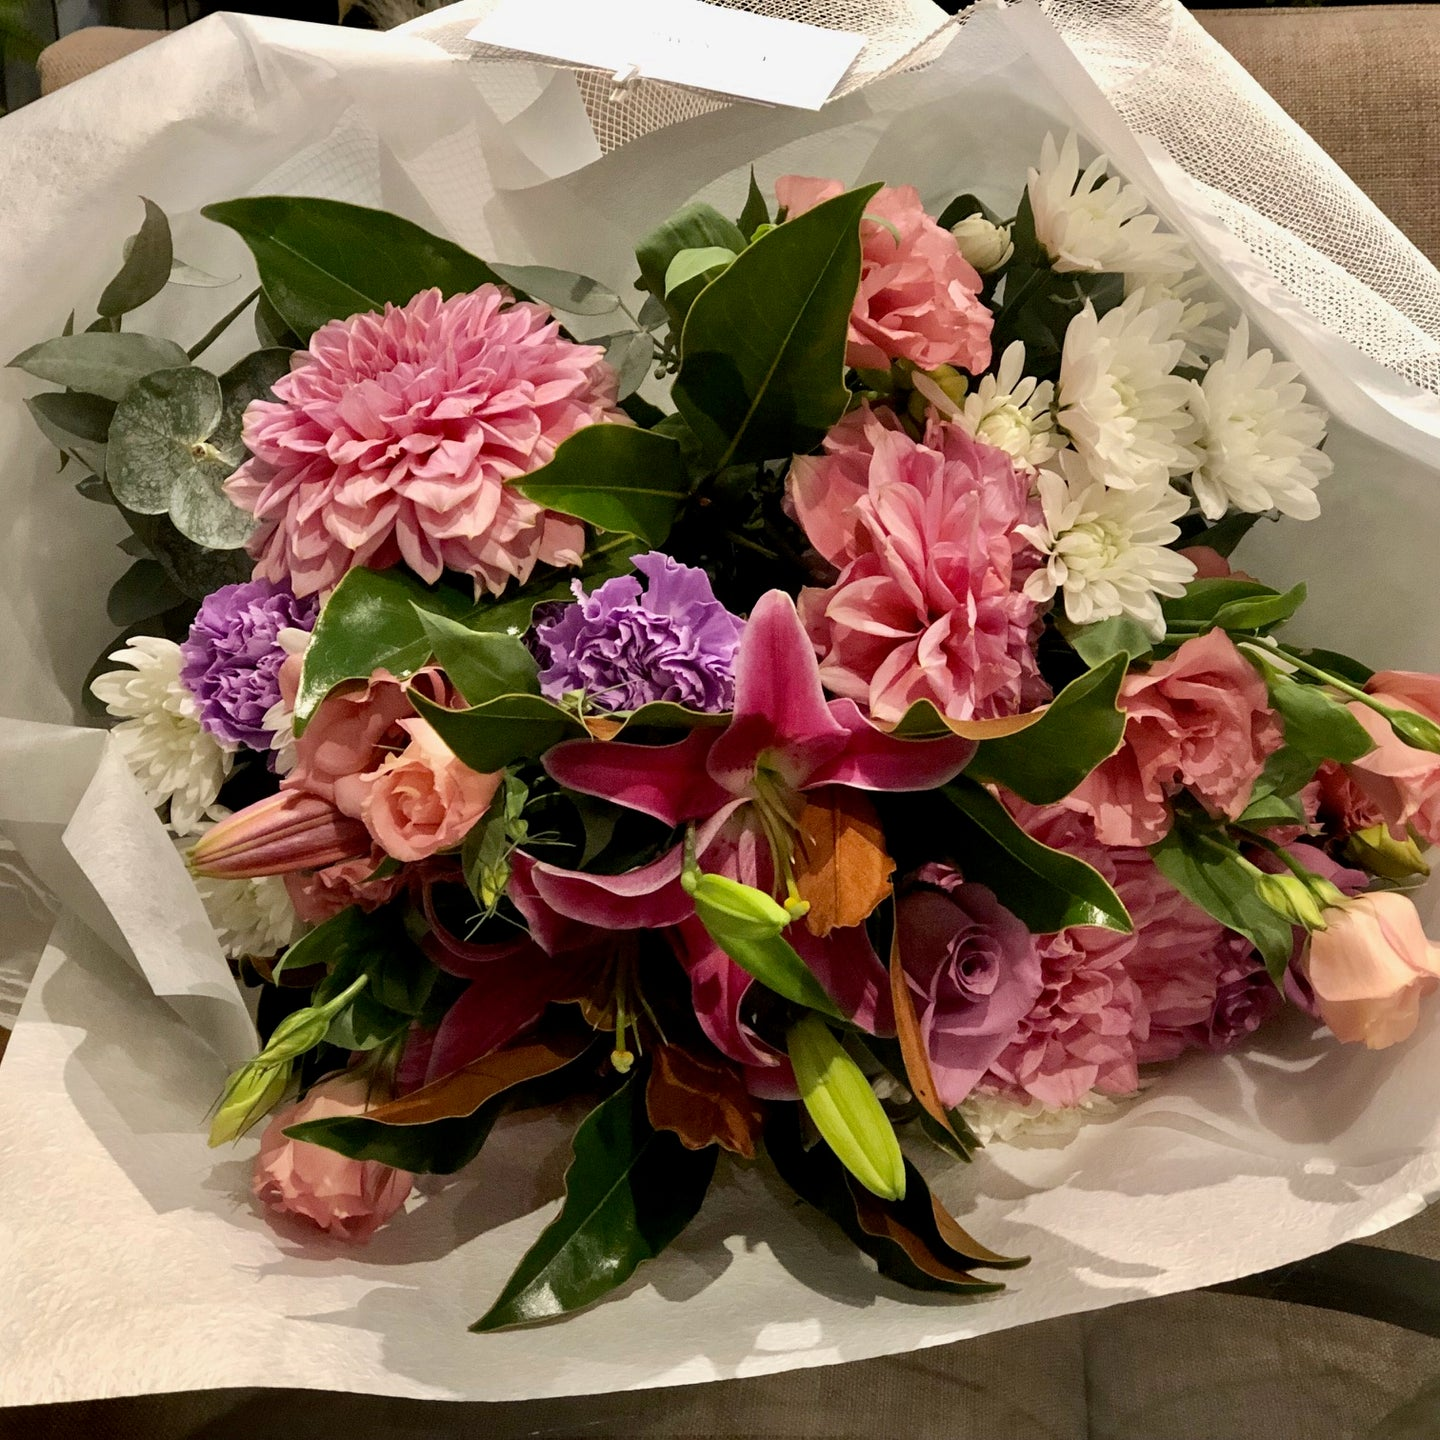 The Pretty and Pastel bouquet is the perfect bouquet for all occasions, Birthday, Happy Birthday, Anniversary, Sympathy, New baby, Thank-you, Welcome Home, All the Best and can be delivered to any Melbourne Suburbs, Melbourne City, Bayside suburbs and Port Melbourne